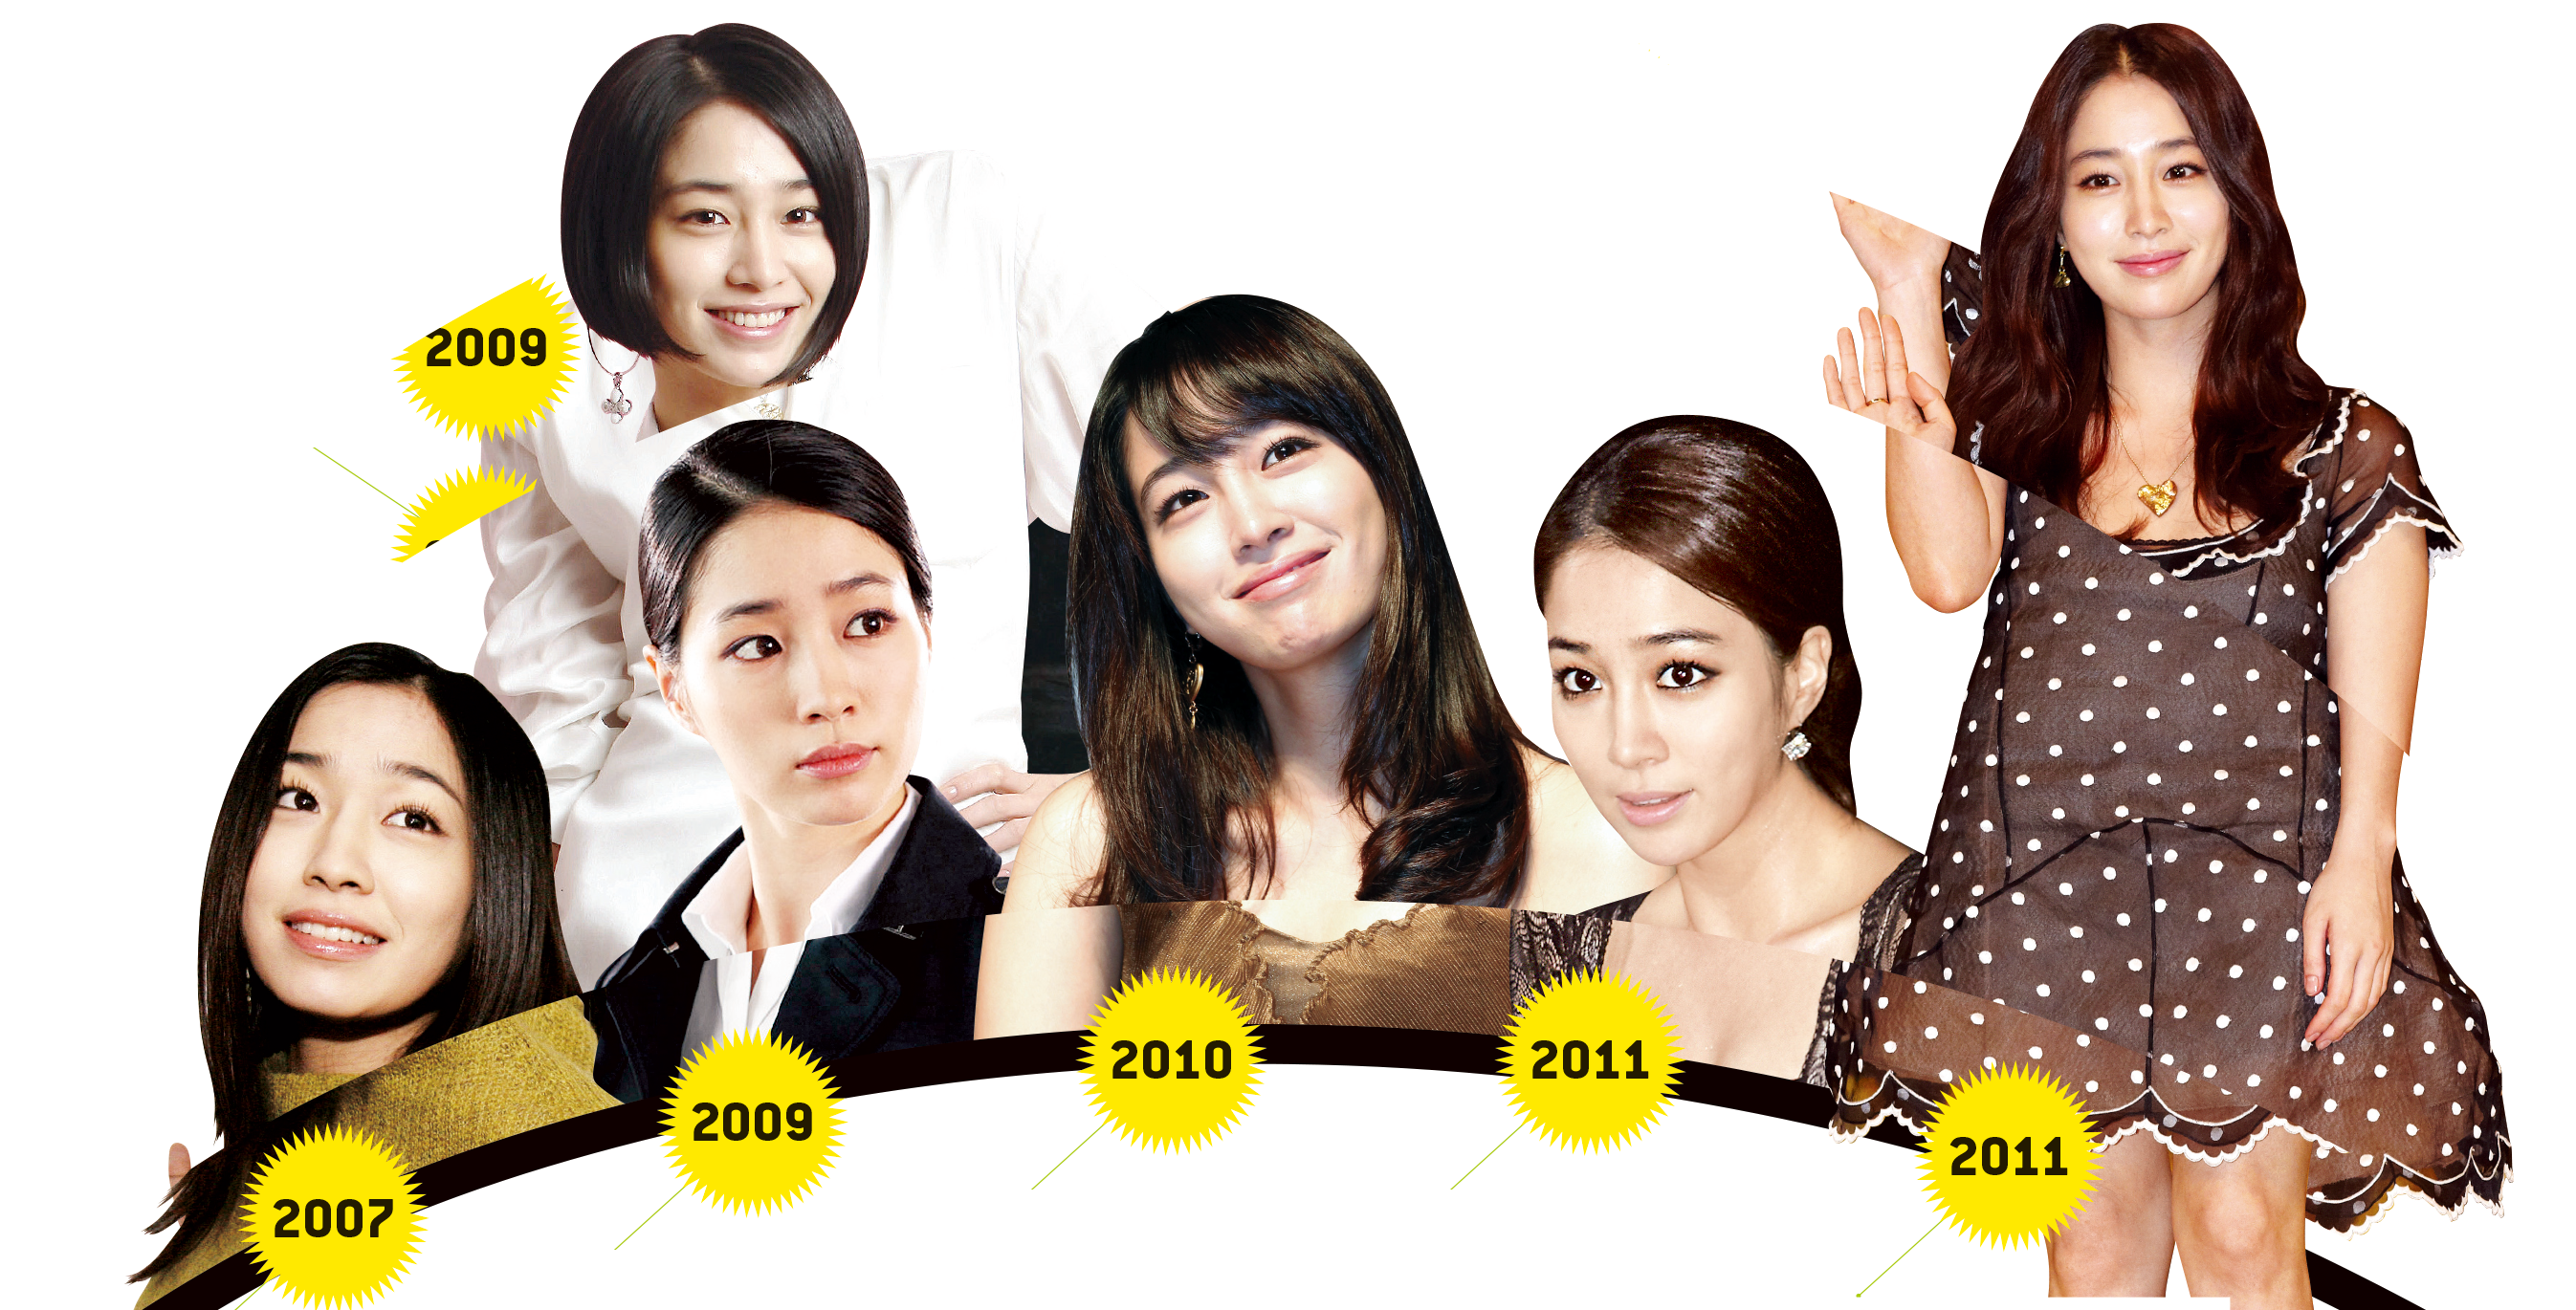 [Ceci] Lee Min Jung's Style Changes Throughout the Years